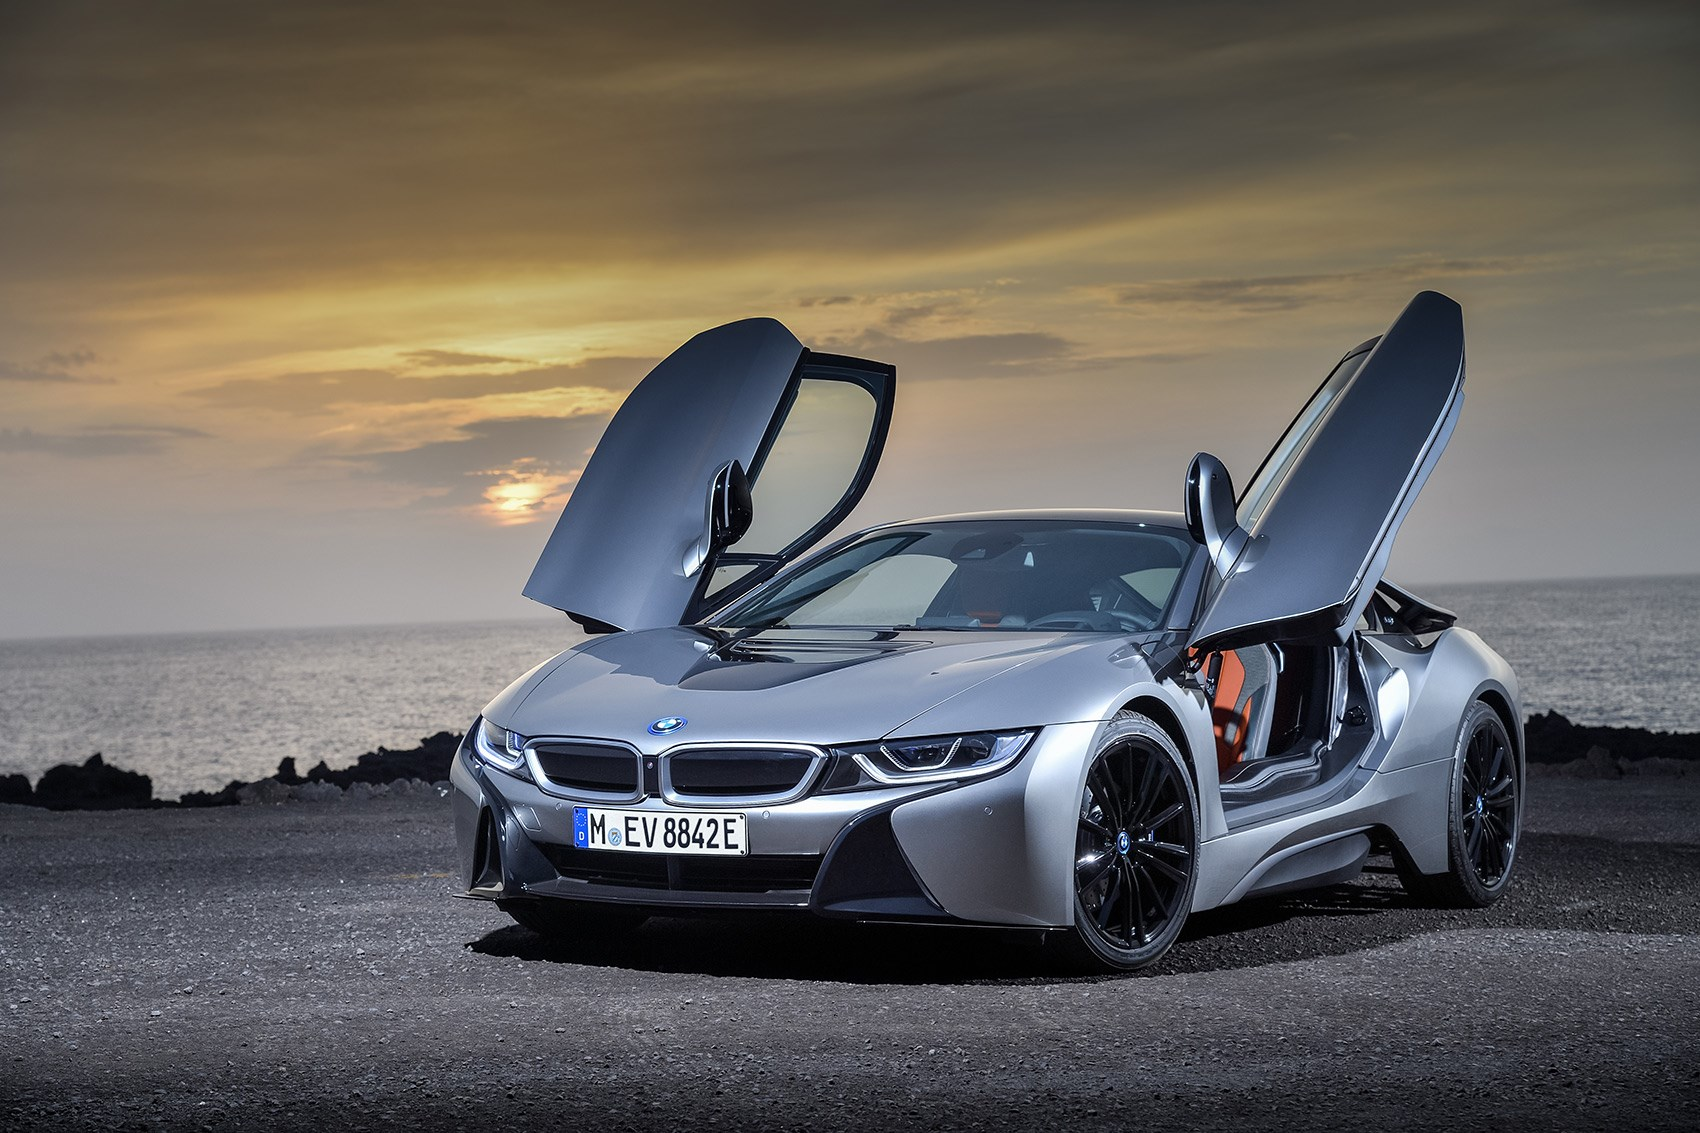 New 2018 Bmw I8 Facelift Specs News Photos Prices on car b pillar